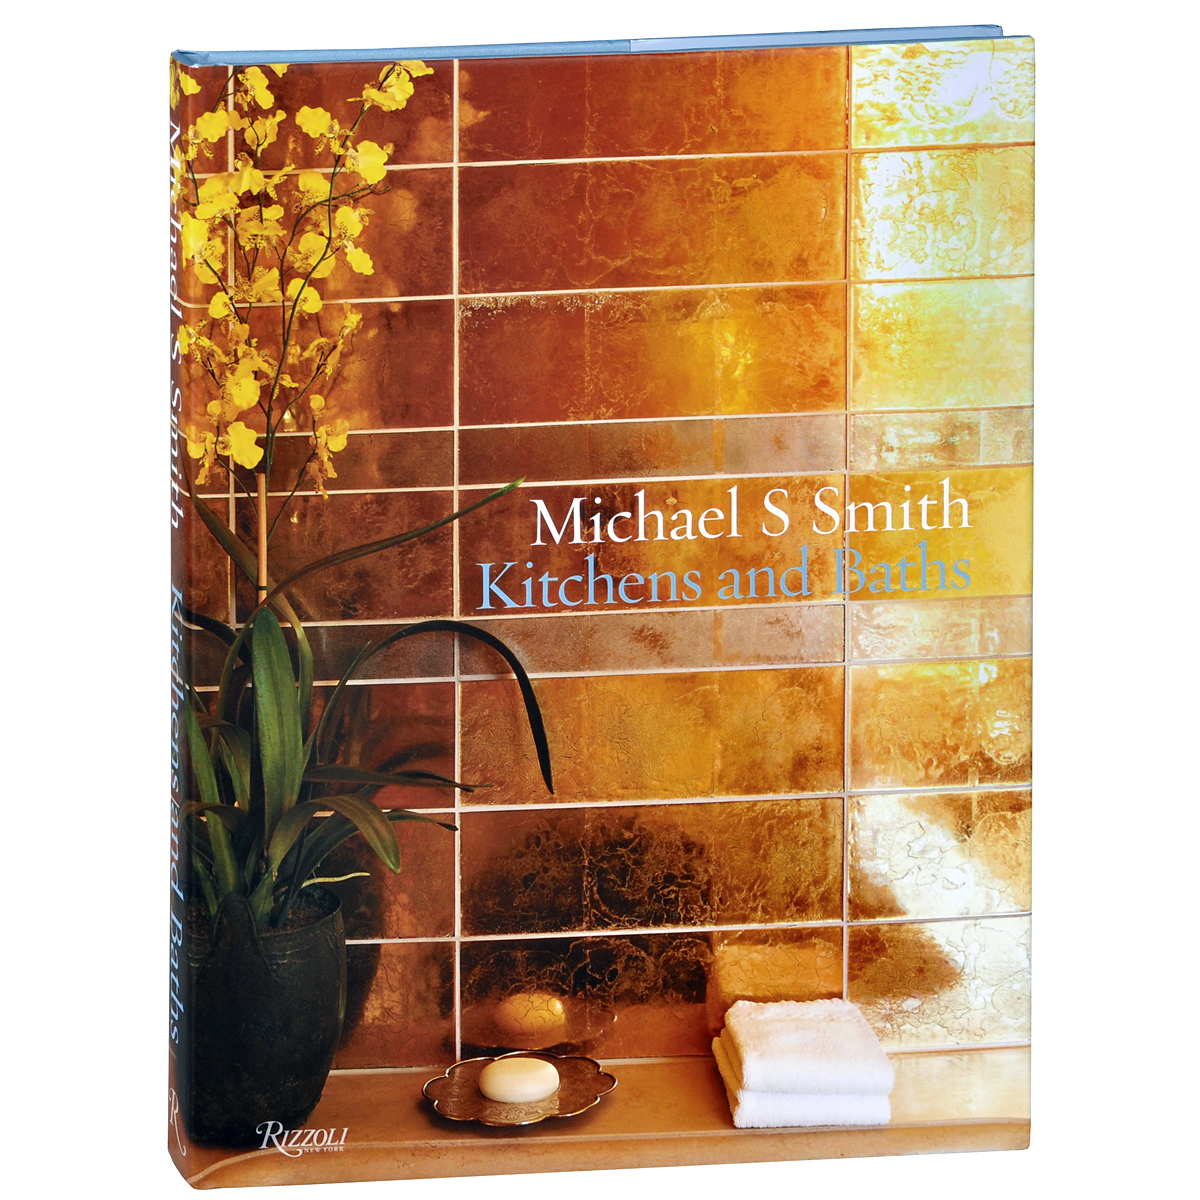 Michael S. Smith Kitchens and Baths case of madeleine smith